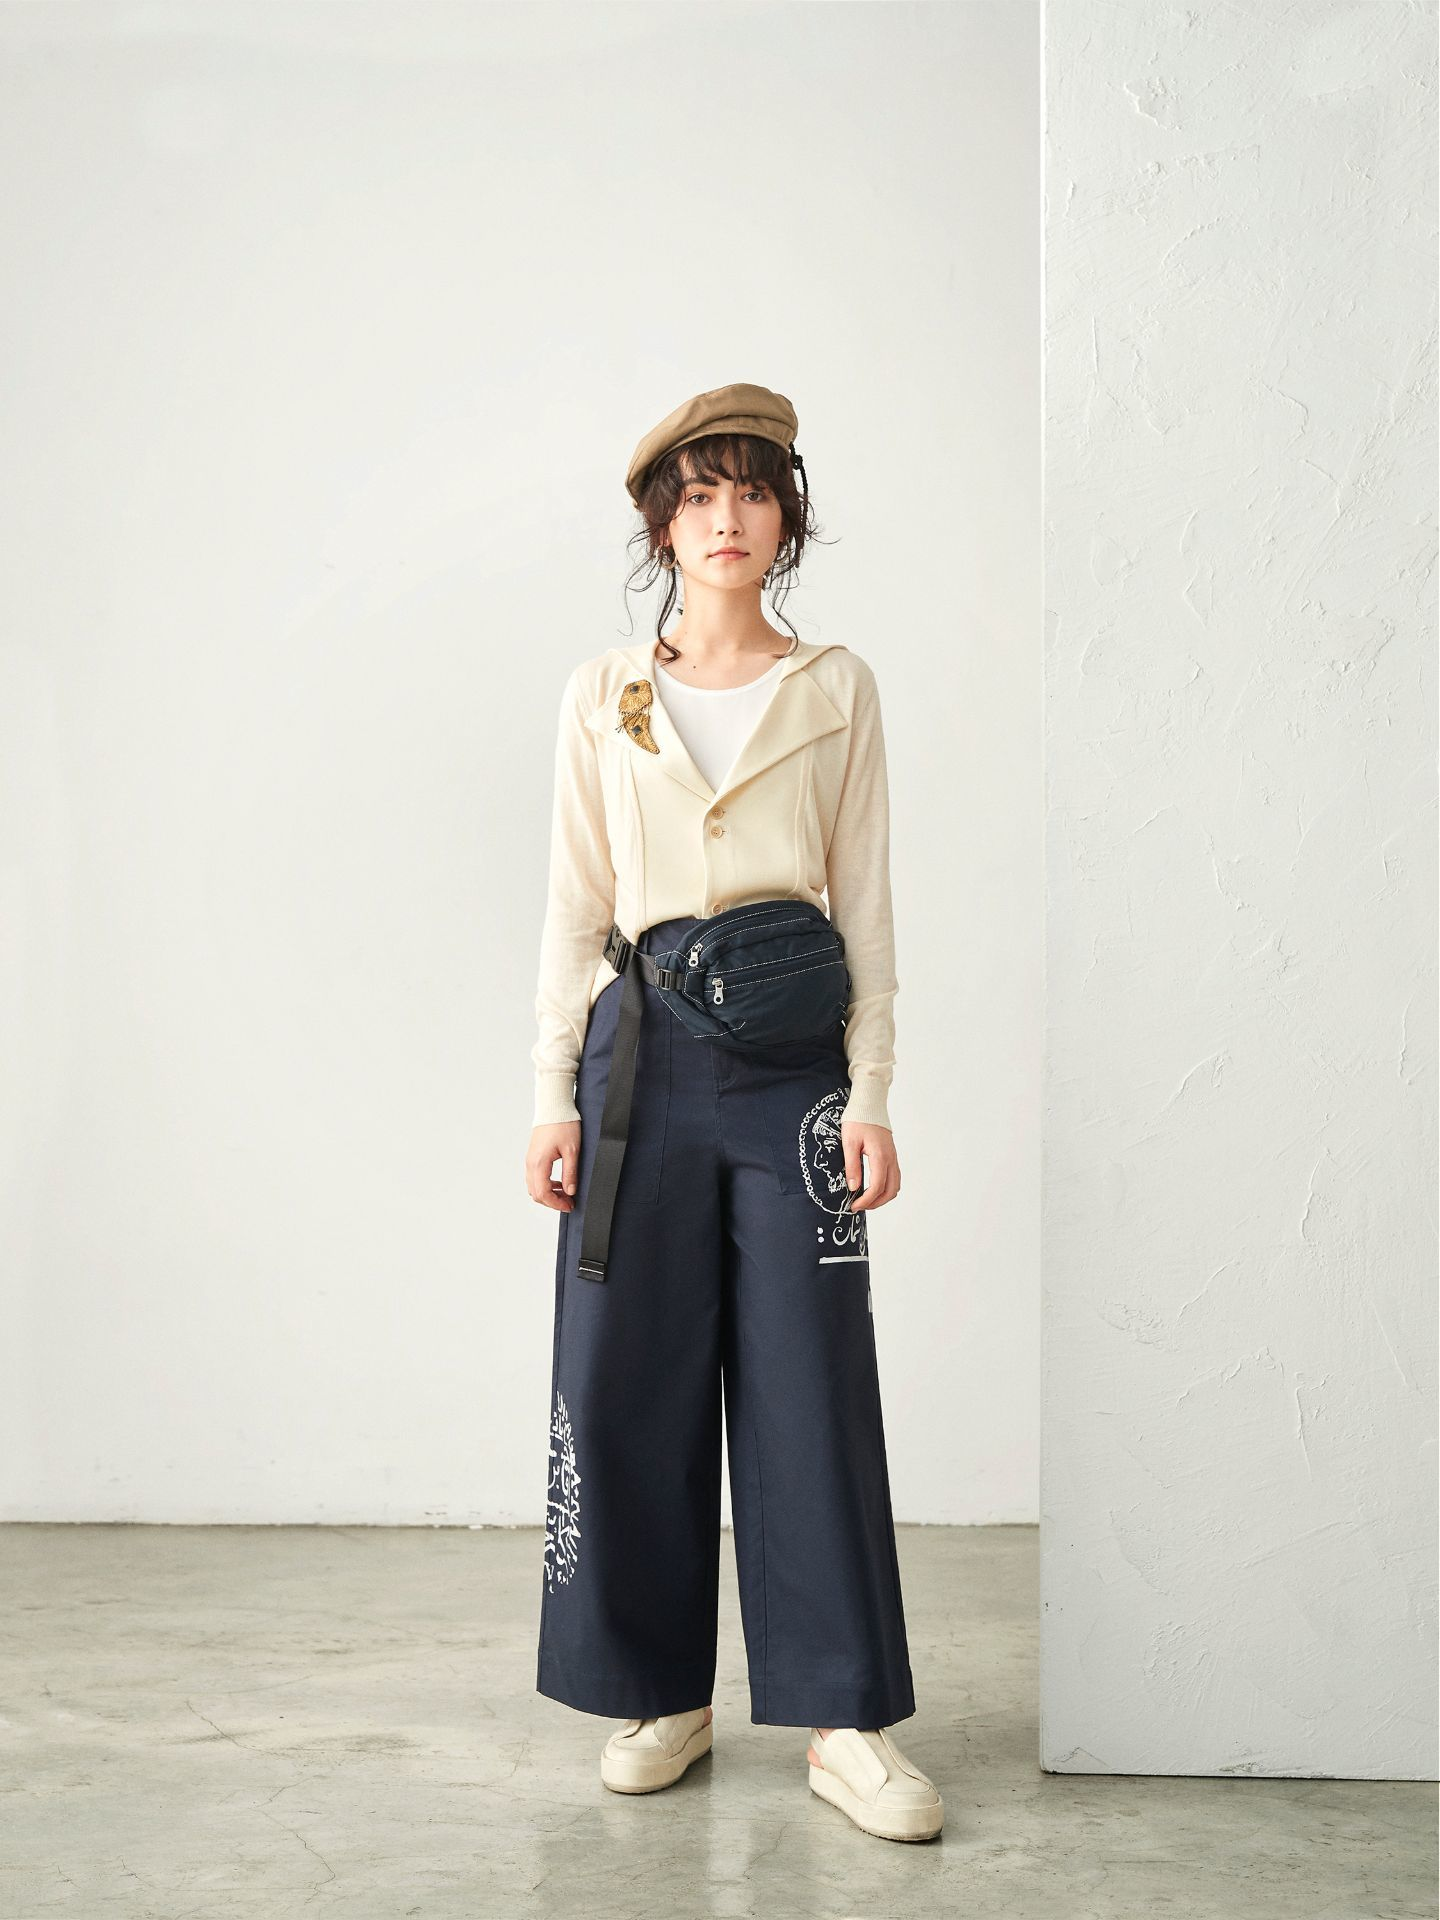 woman 2019 summer lookbook 2 24088